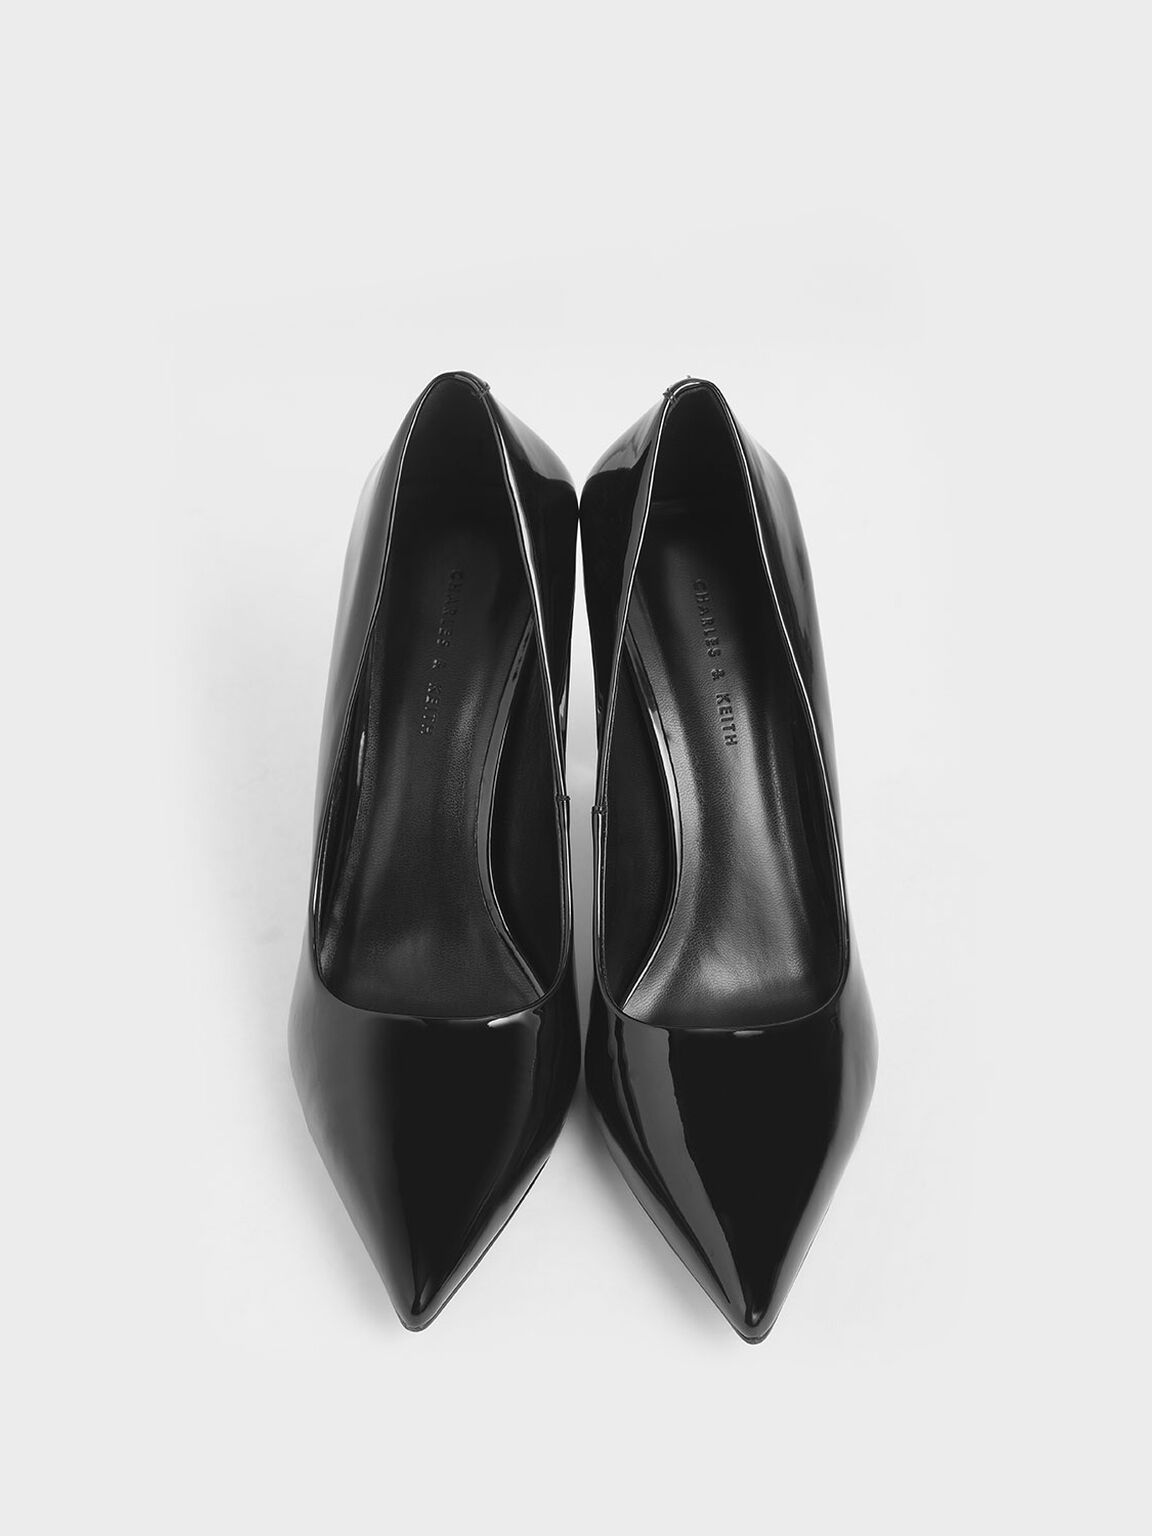 Patent Blade Heel Pumps, Black, hi-res